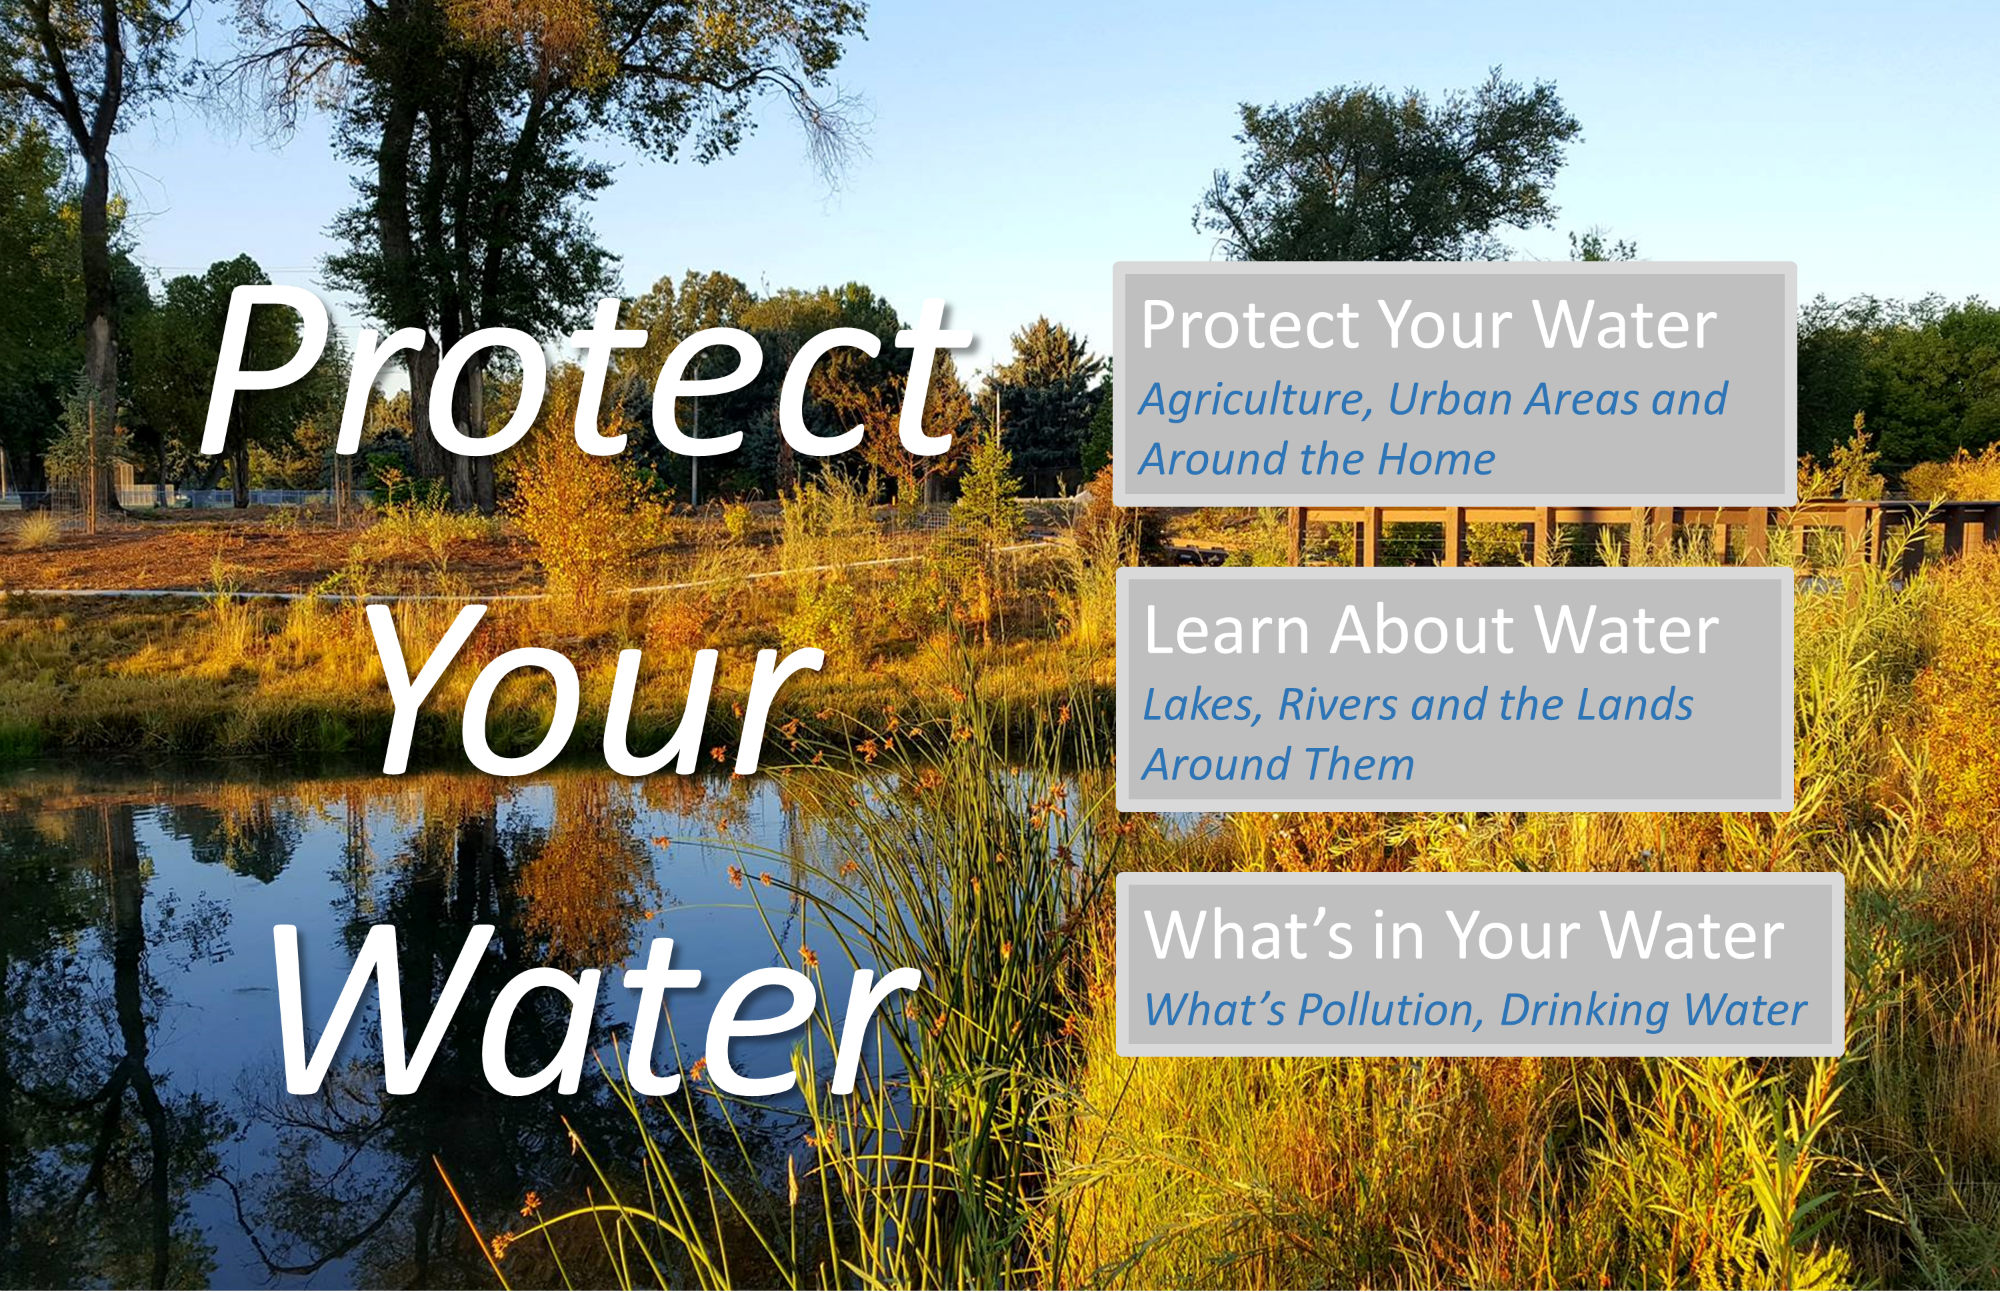 Protect Your Water